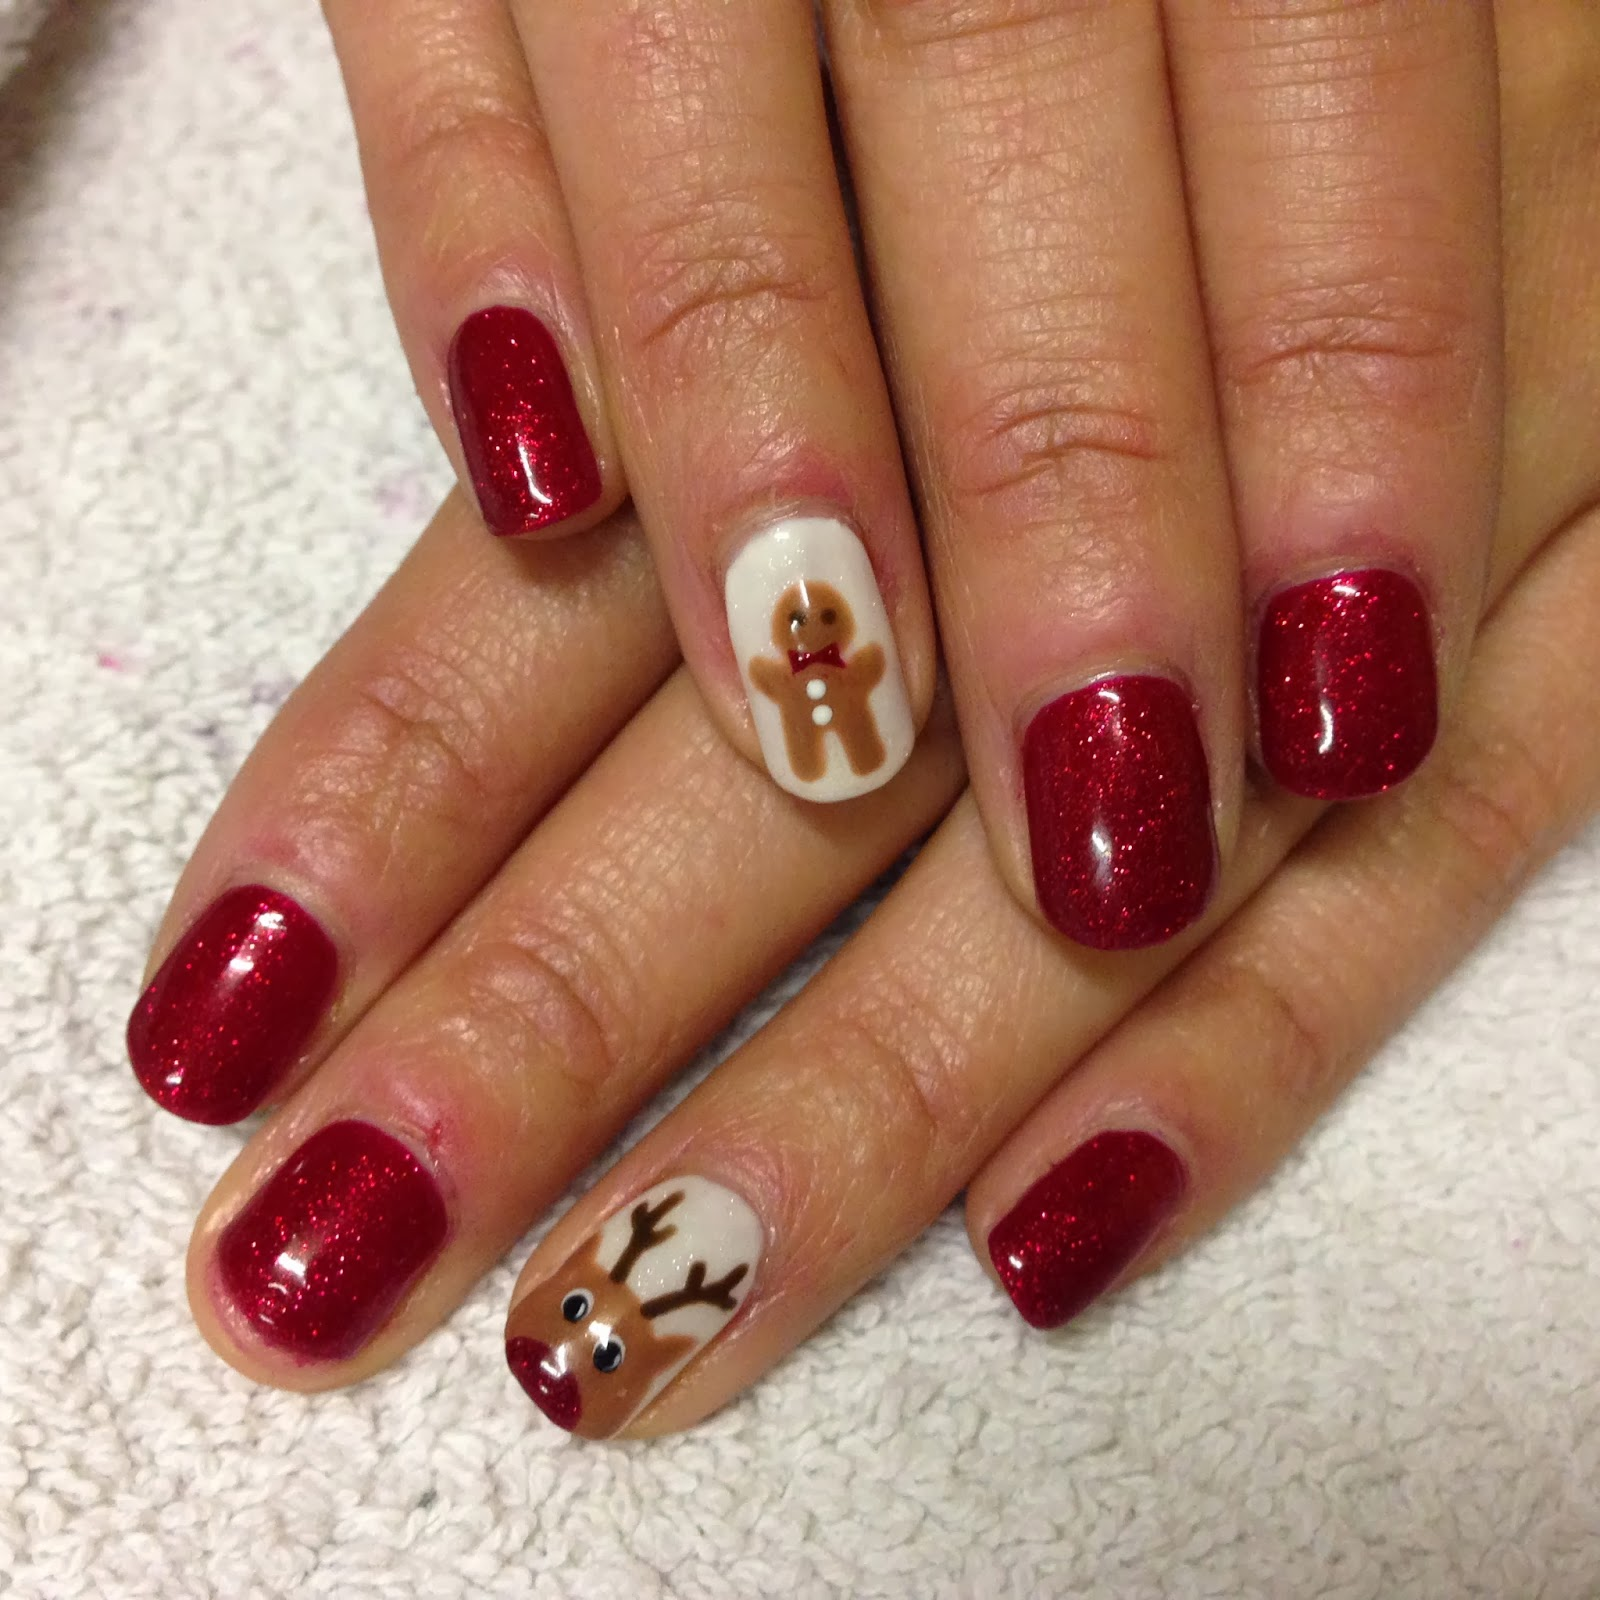 up!: CND Shellac Christmas Nail Art - #8 Rudolph and Gingerbread Men